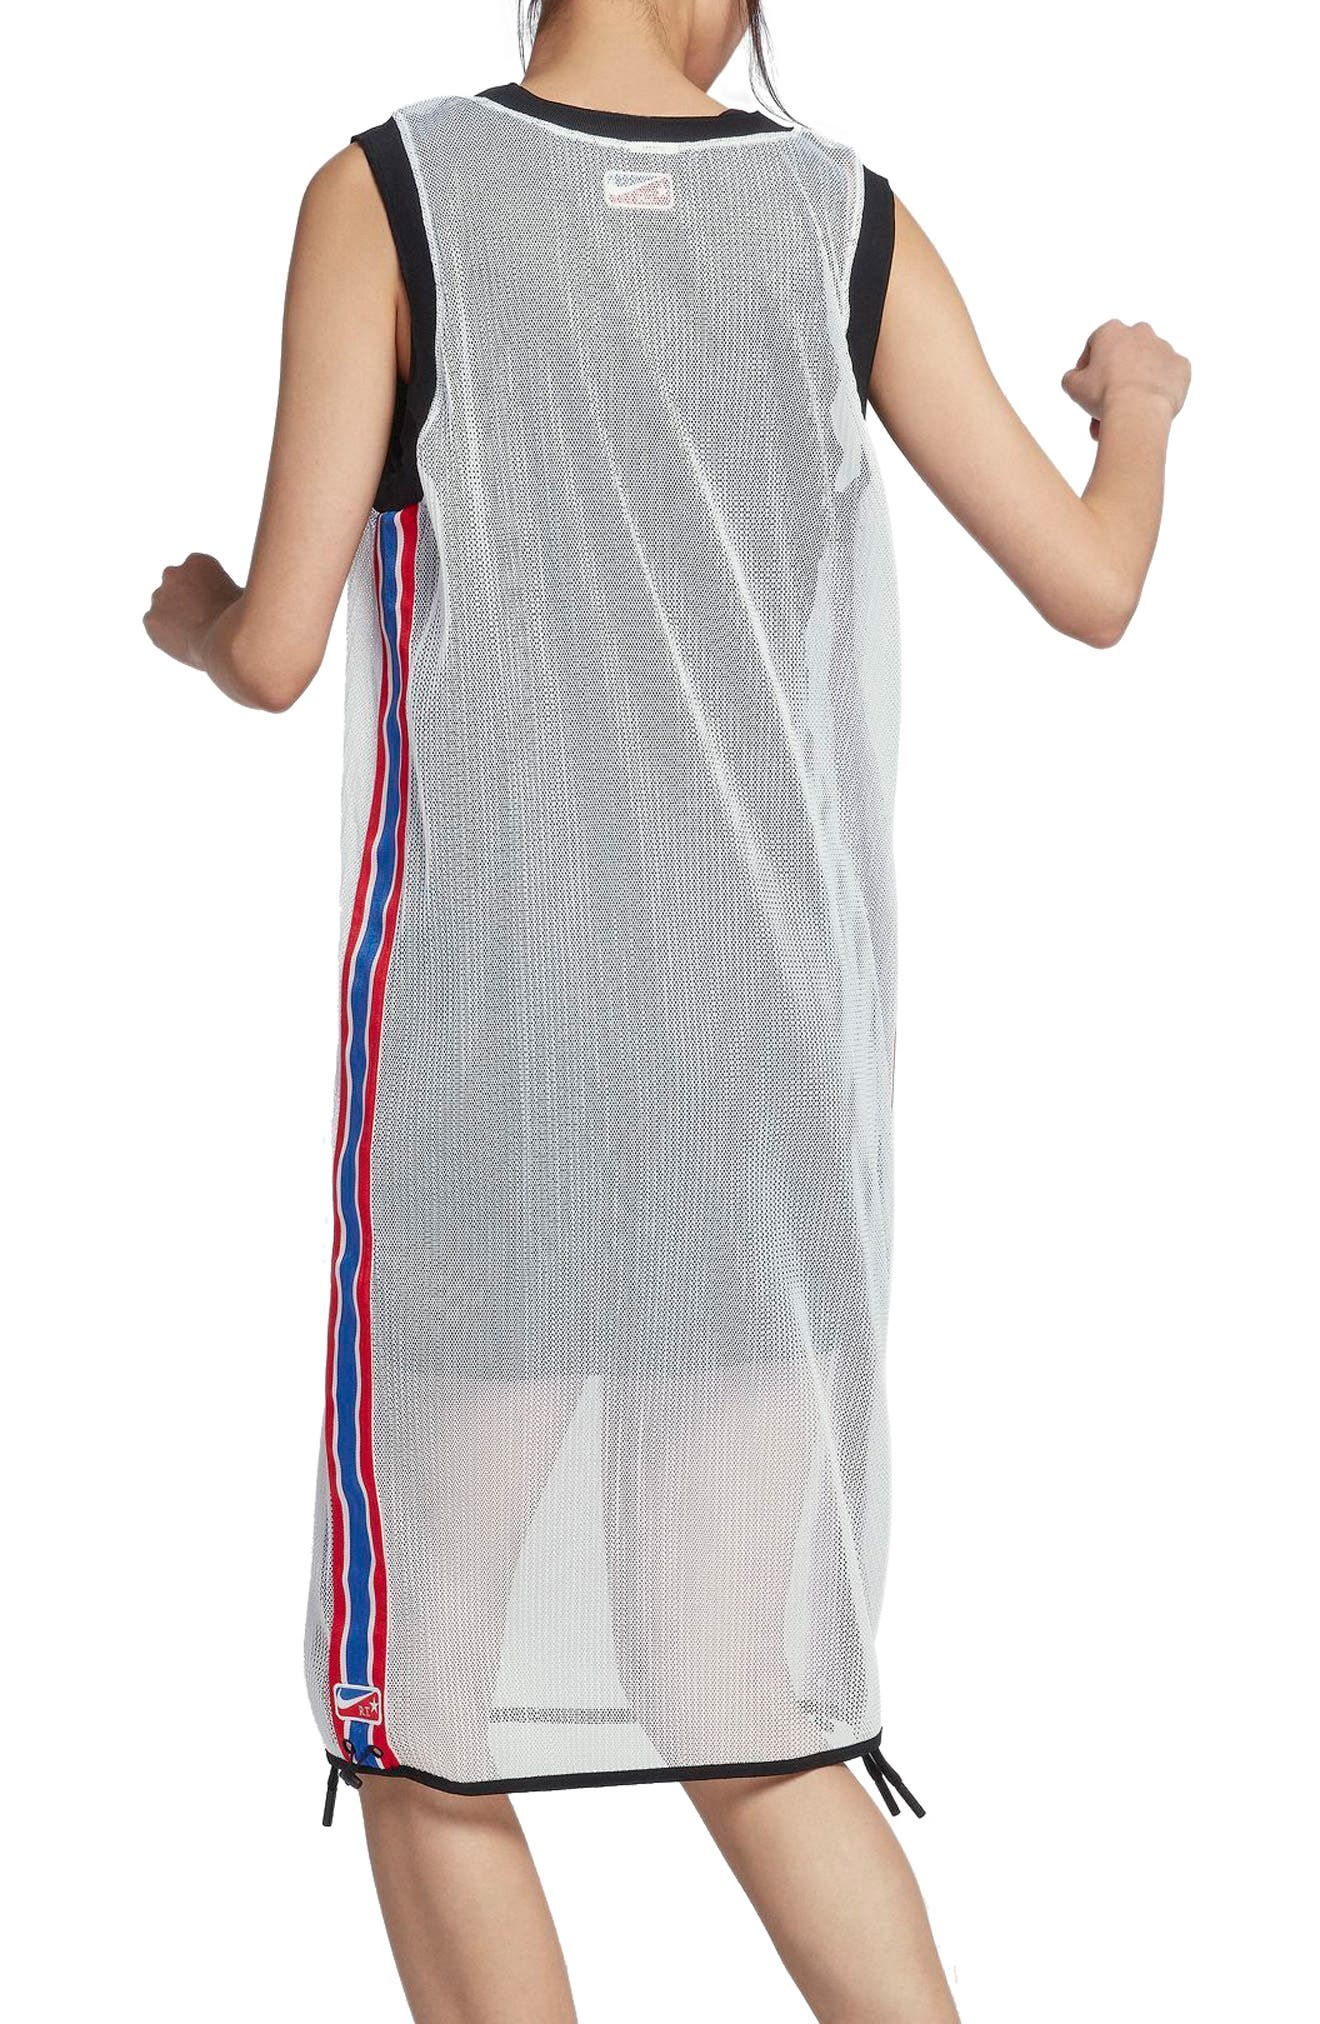 NikeLab x RT Mesh Jersey Dress,                             Alternate thumbnail 2, color,                             White